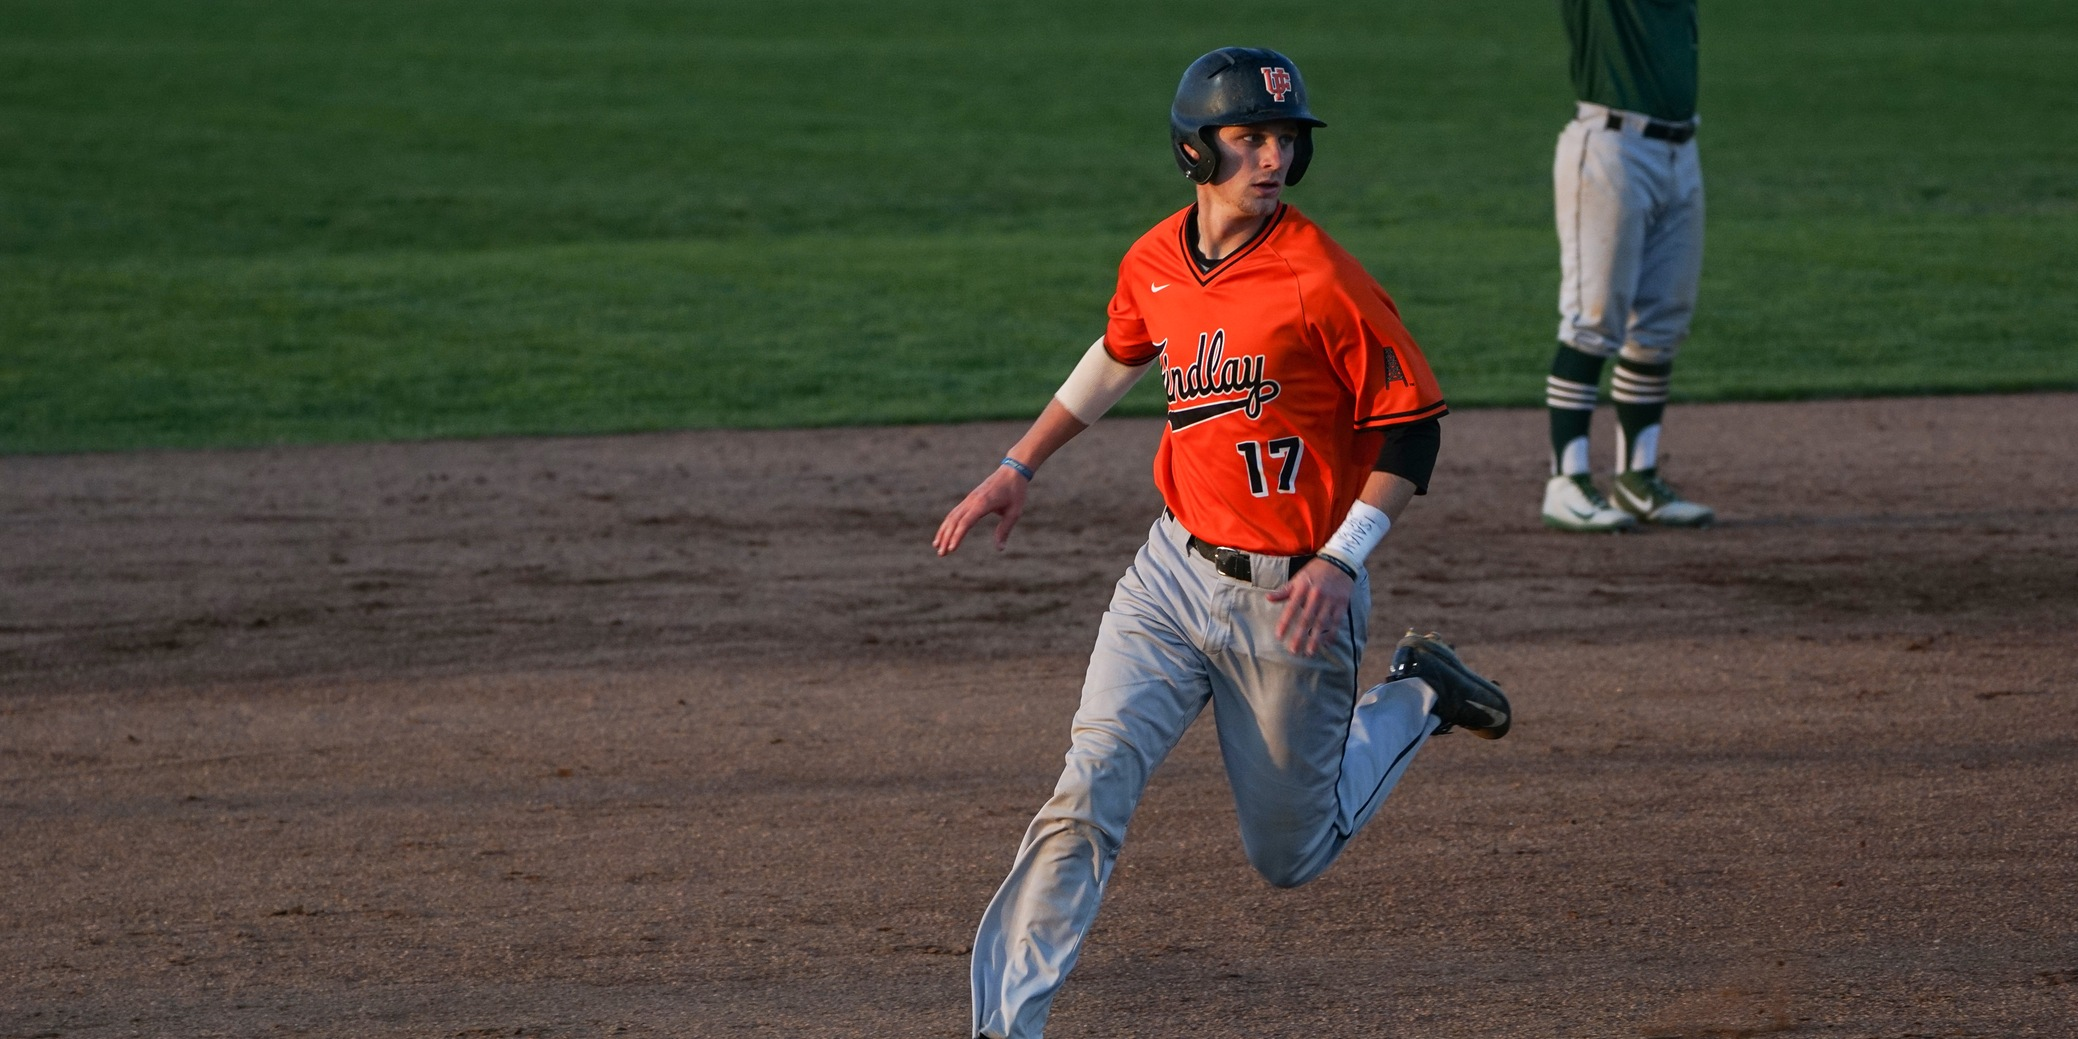 Findlay Drops a Pair of One Run Games to Lake Erie